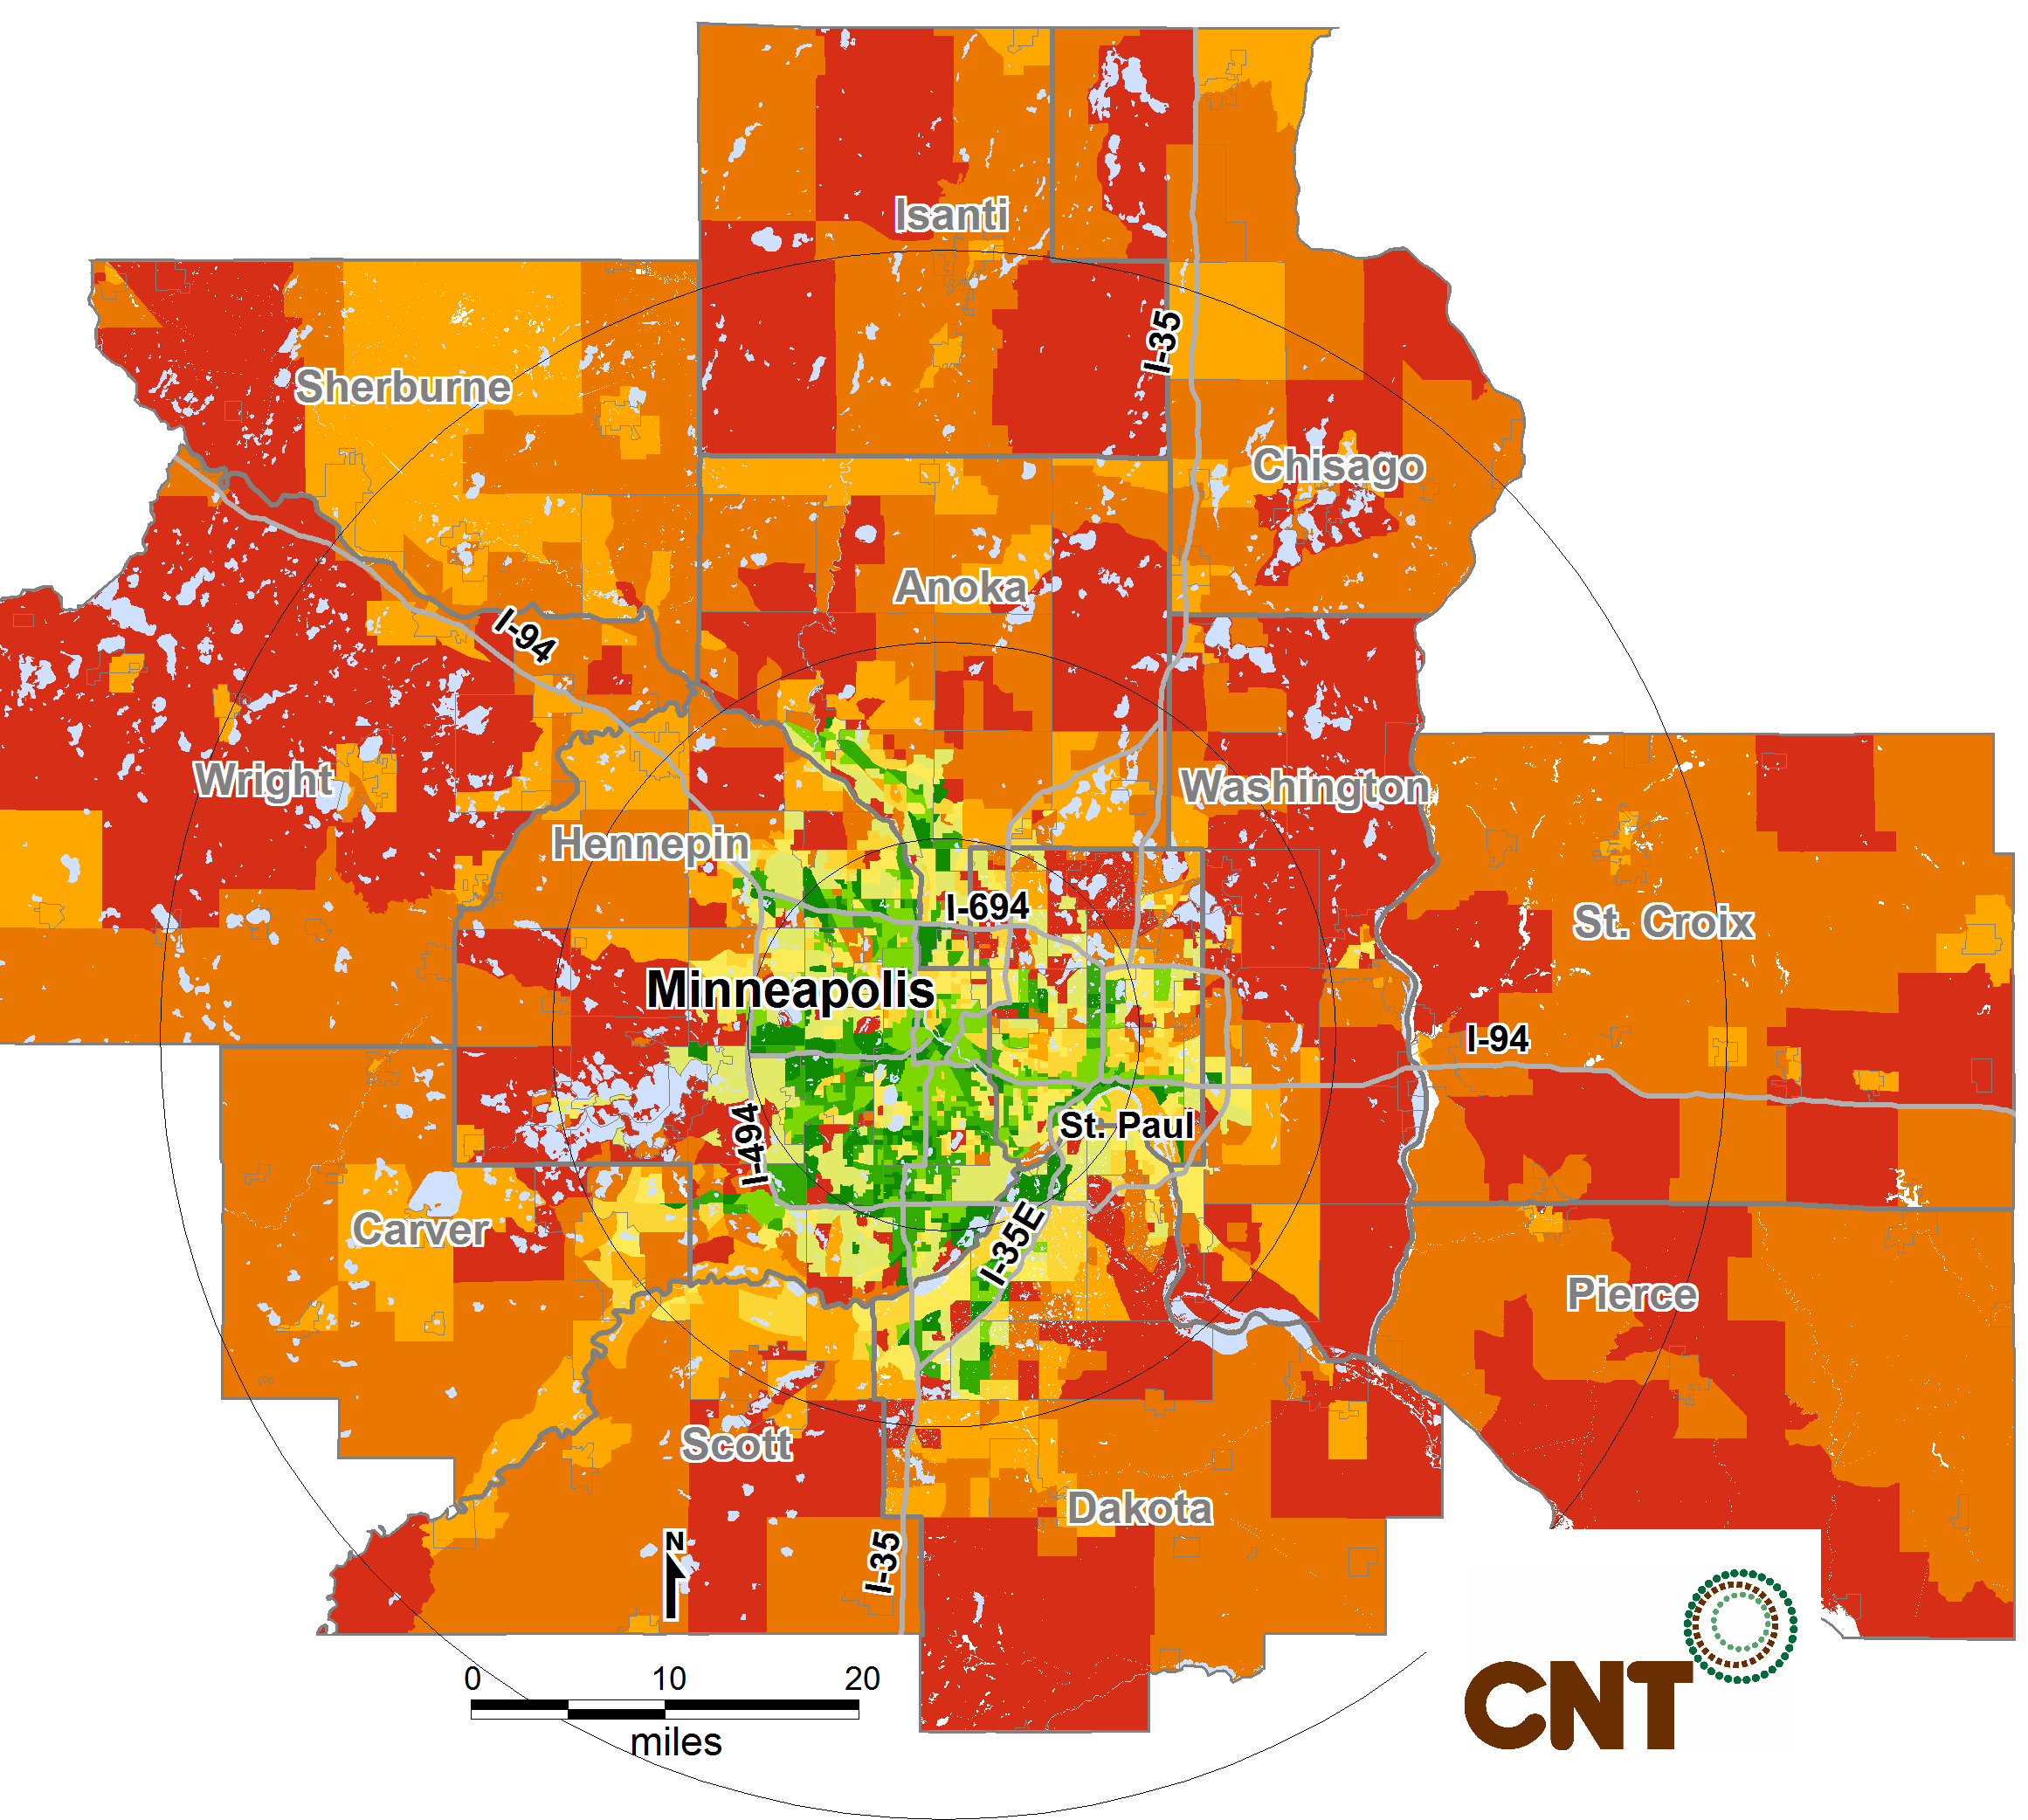 METROPOLITAN TRANSIT ACCESS CASE STUDIES Minneapolis, Minnesota in 2015 The percentage of urban seniors age 65-79 with poor transit access is projected to increase slightly to 11 percent by 2015,